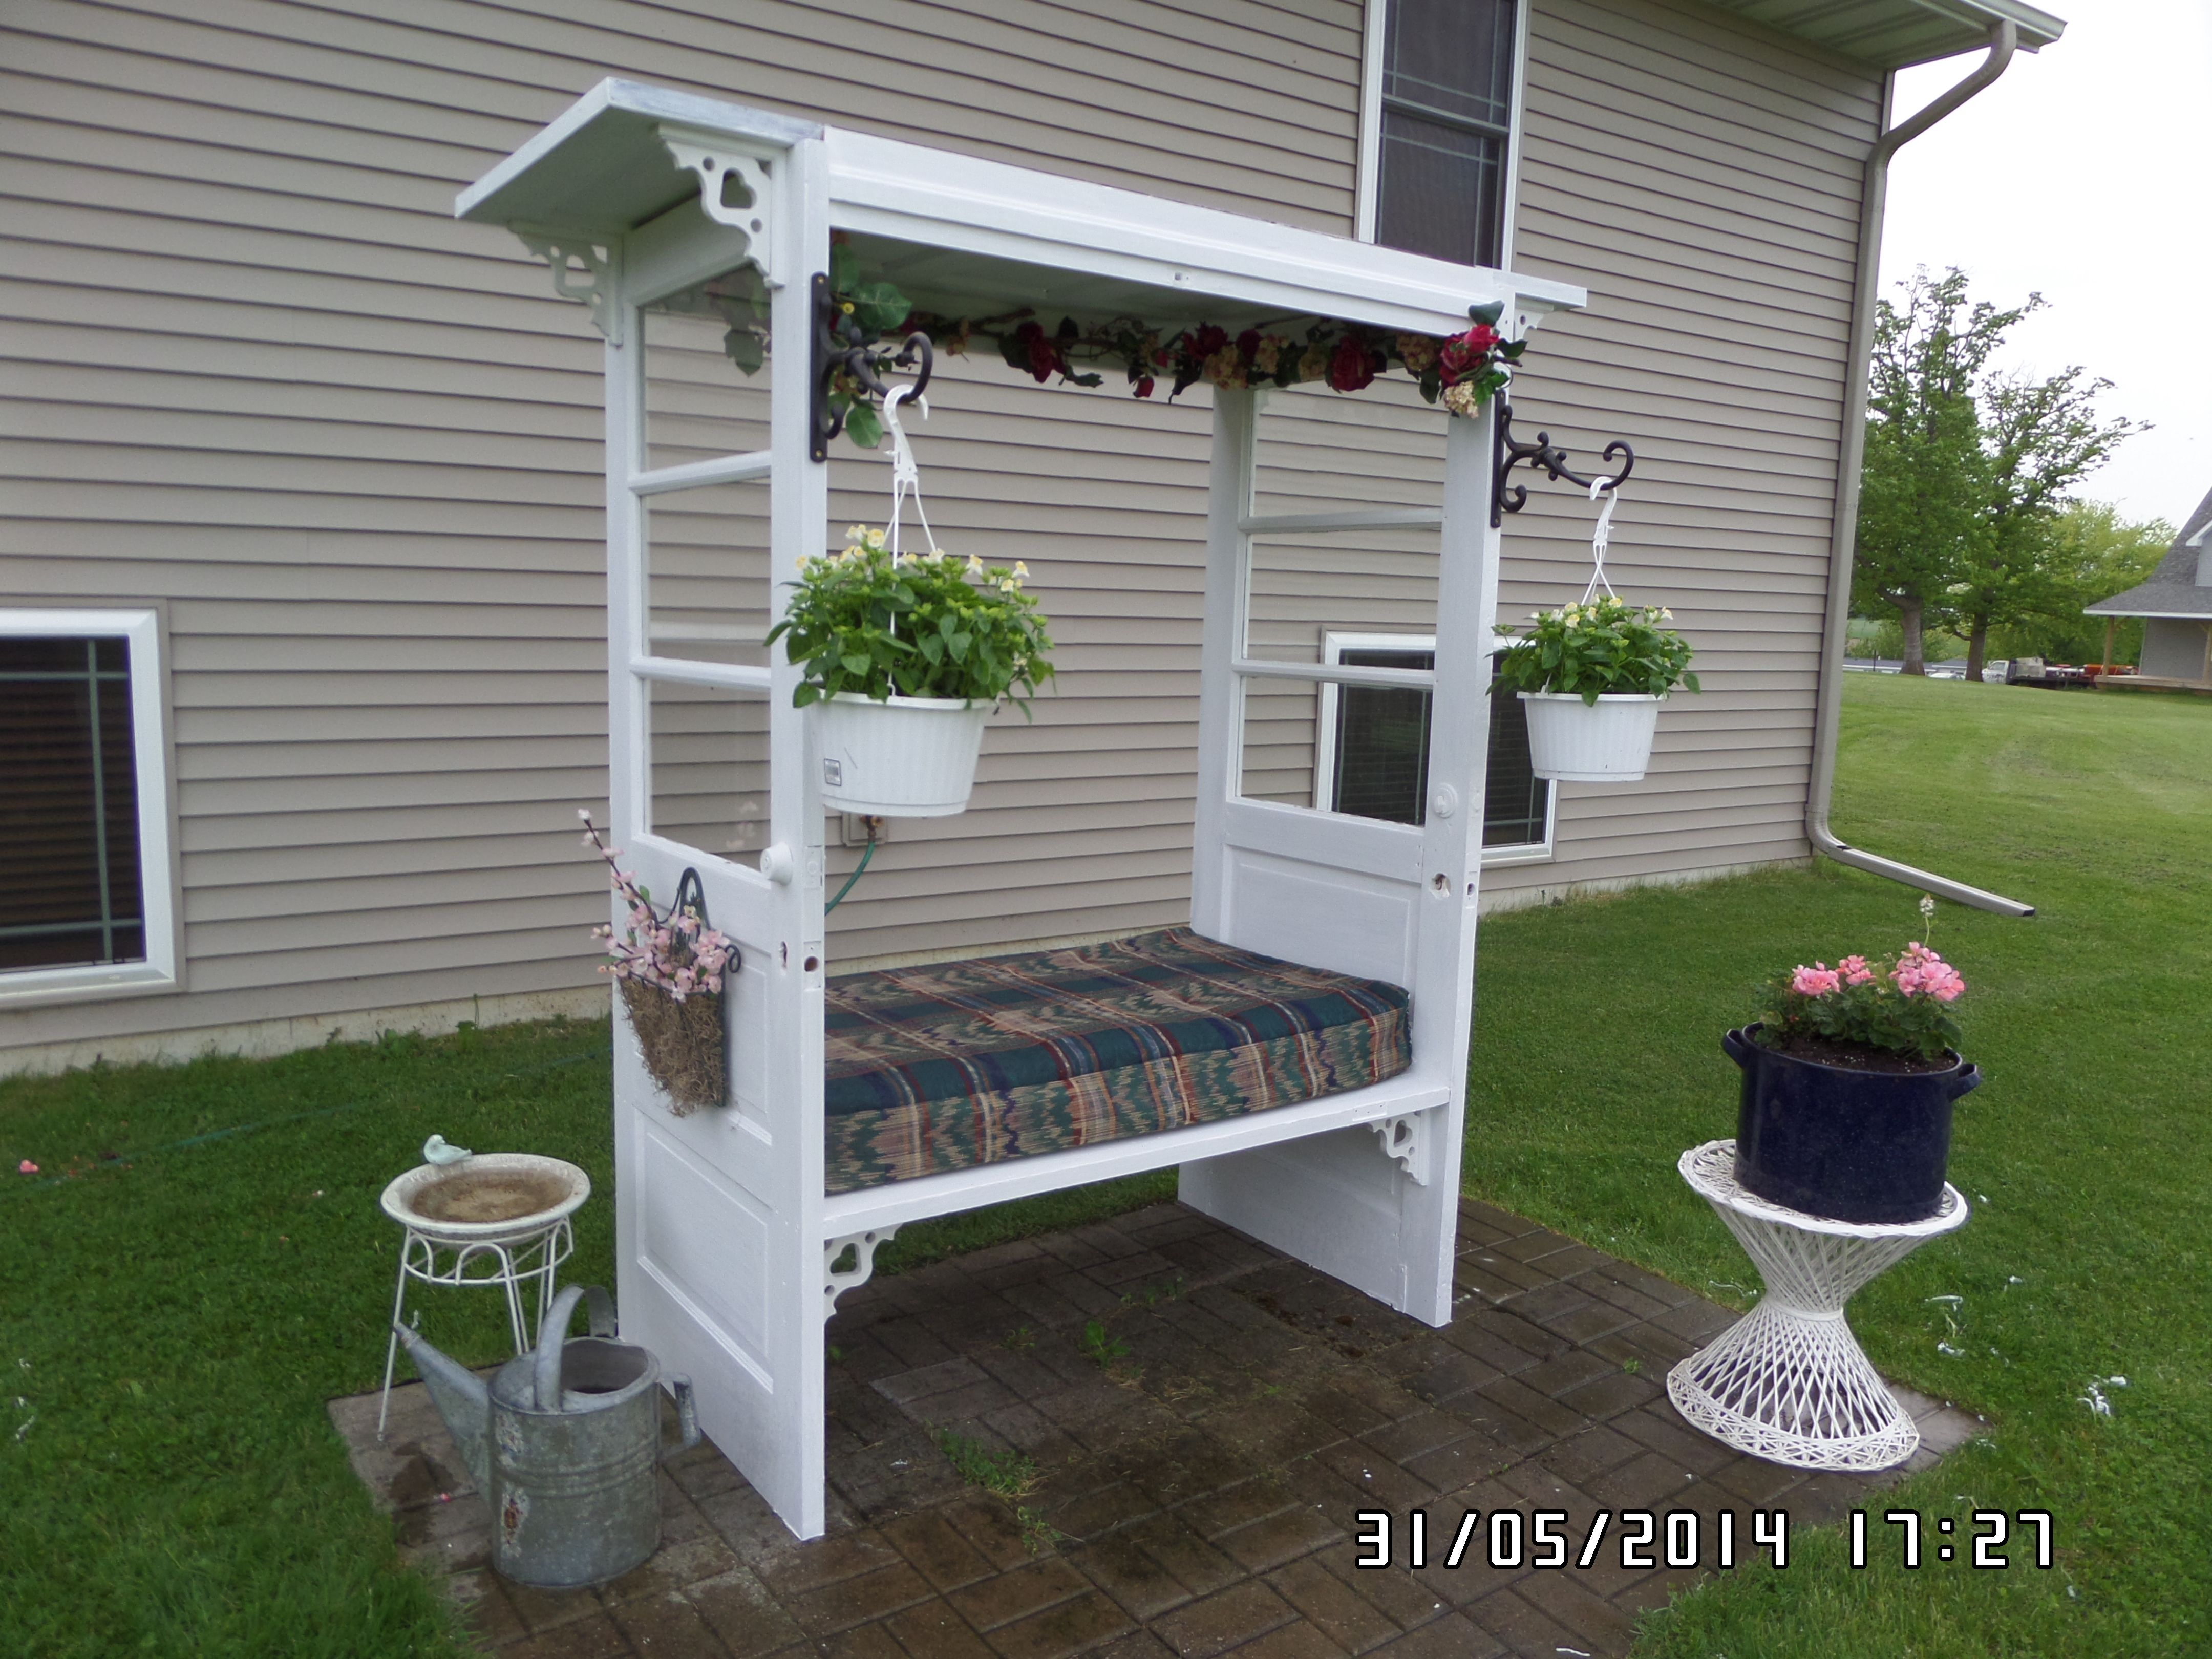 Old doors made into an arbor. We just made one with 4 old